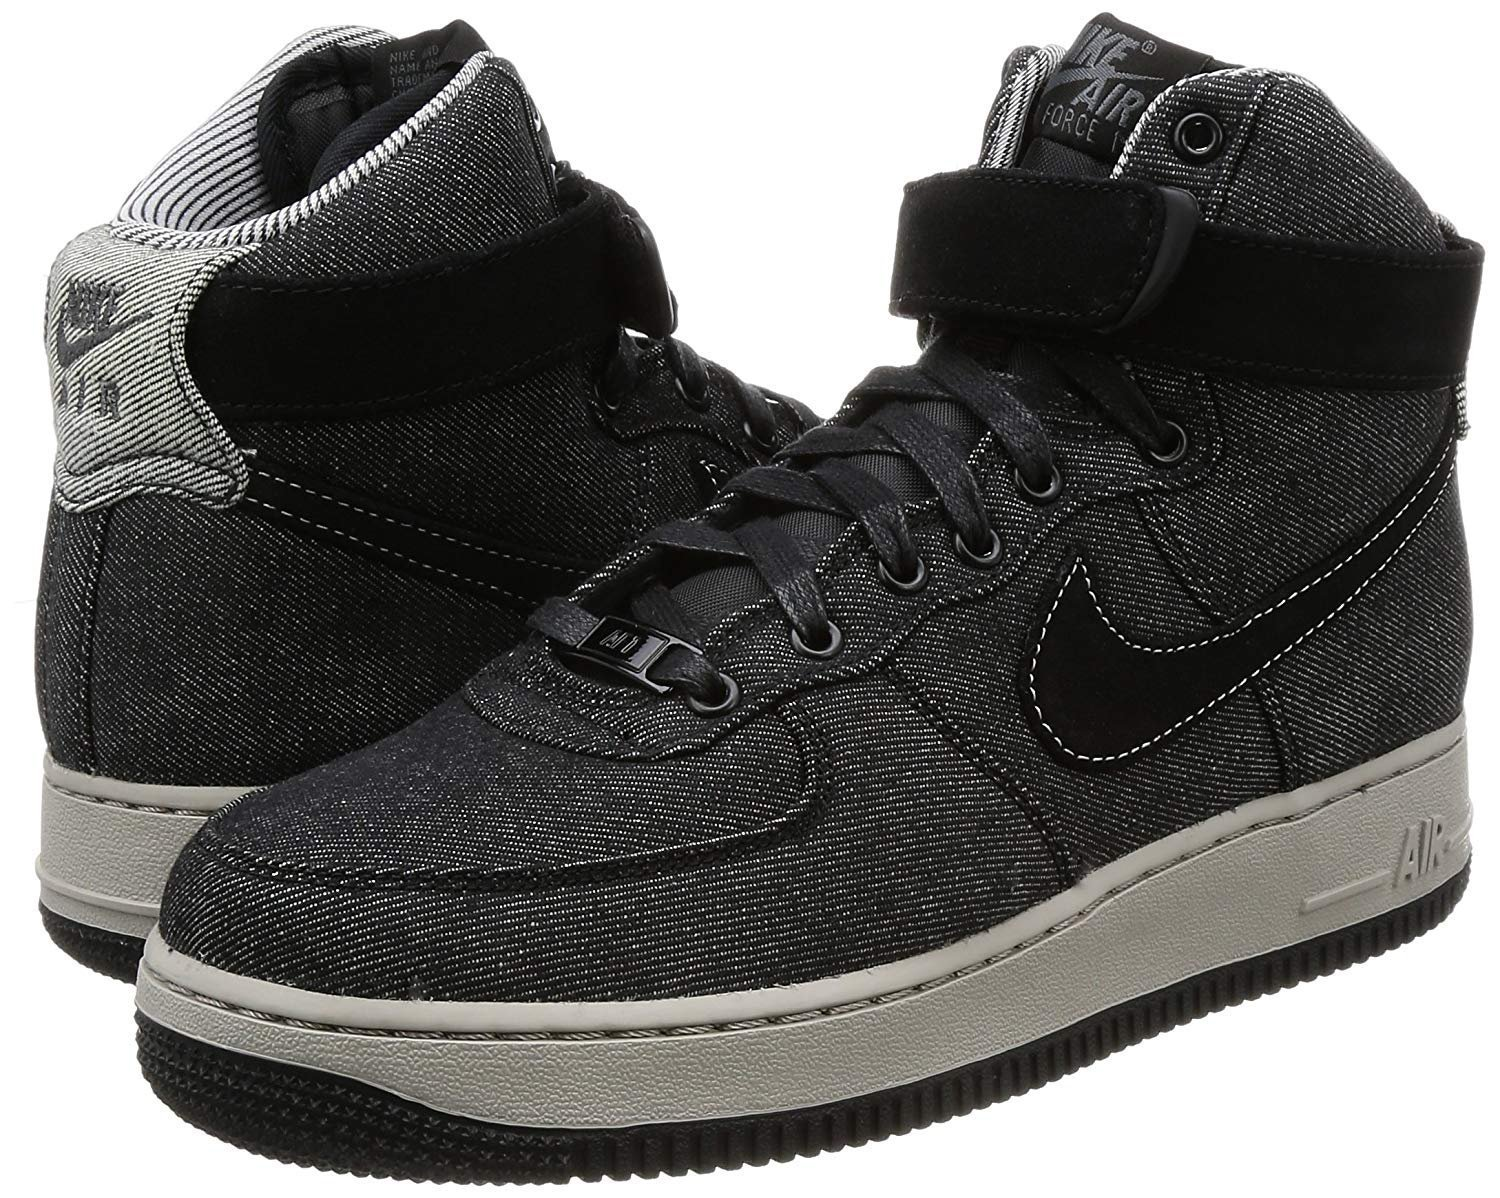 NIKE Women's Air Force 1 Hi SE Basketball Shoe B079HCDDYV 5.5 M US|Black/ Dark Grey-cobble Stone